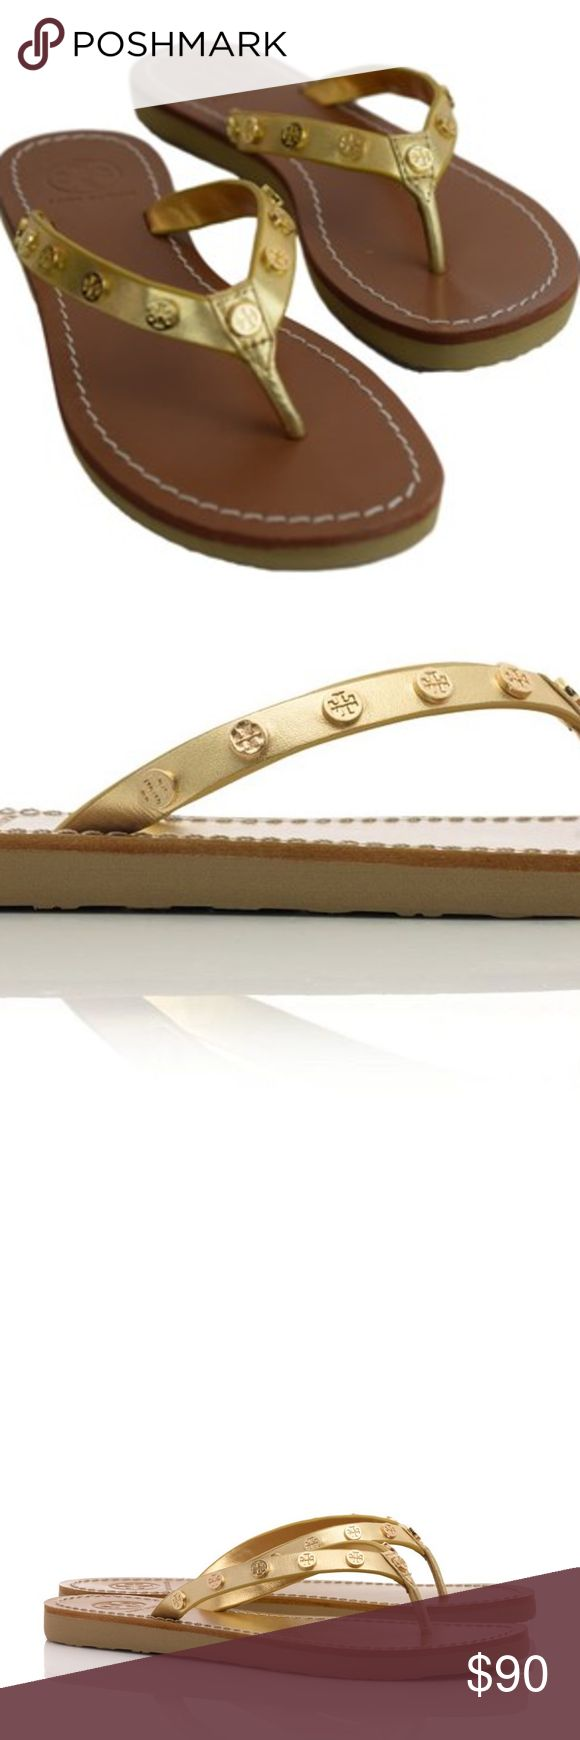 Tory Burch Ricki Metallic Gold Flip Flop Size 8 Tory Burch - NEW PICTURES WILL be added tonight  Ricki Metallic Gold Flip Flop  The polish of our signature Double Wrap Logo Bracelet, in chic footwear form. Our Ricki Metallic Flip-Flop is detailed with logo-embossed flat studs - giving this warm-weather basic a jewelry-like feel and touch of hardware edge. Made of rich leather with an of-the-moment gold finish, it's a comfortable essential for sunny days and getaways.  Size 8  Very gently…